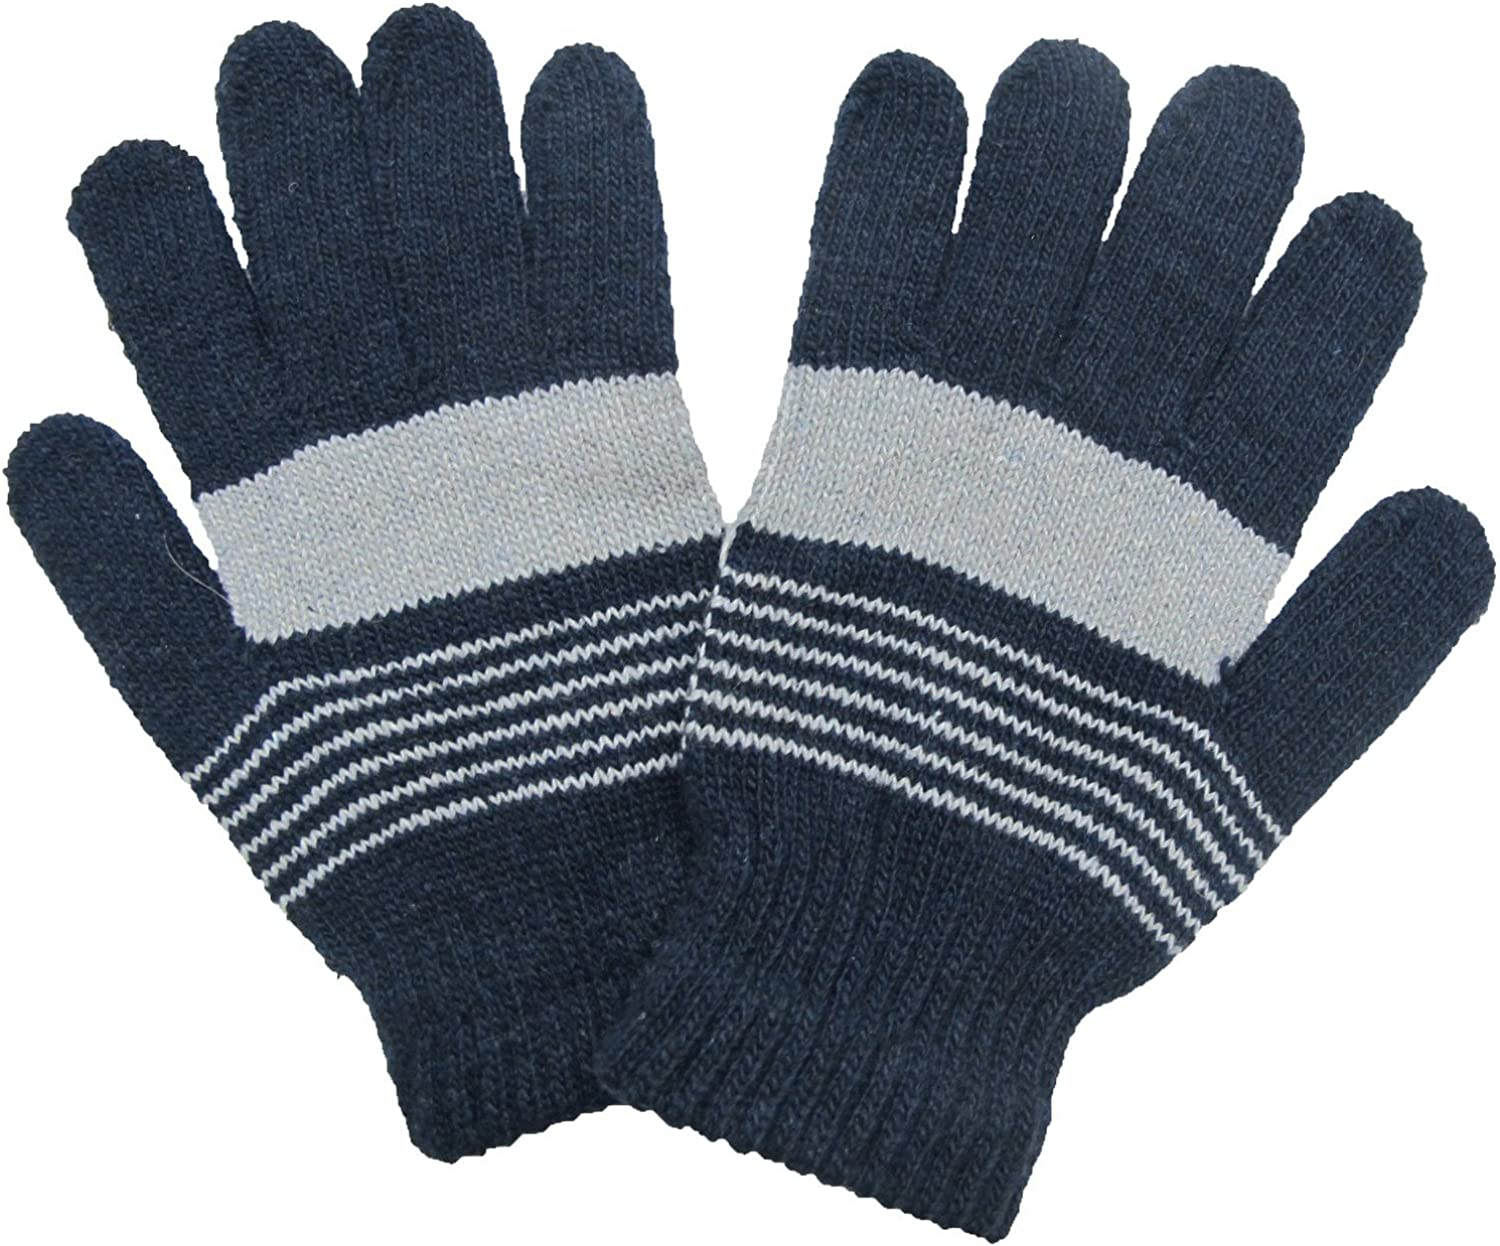 Magic Wool Gloves, Adult Size. Fine Brushed Wool Gloves